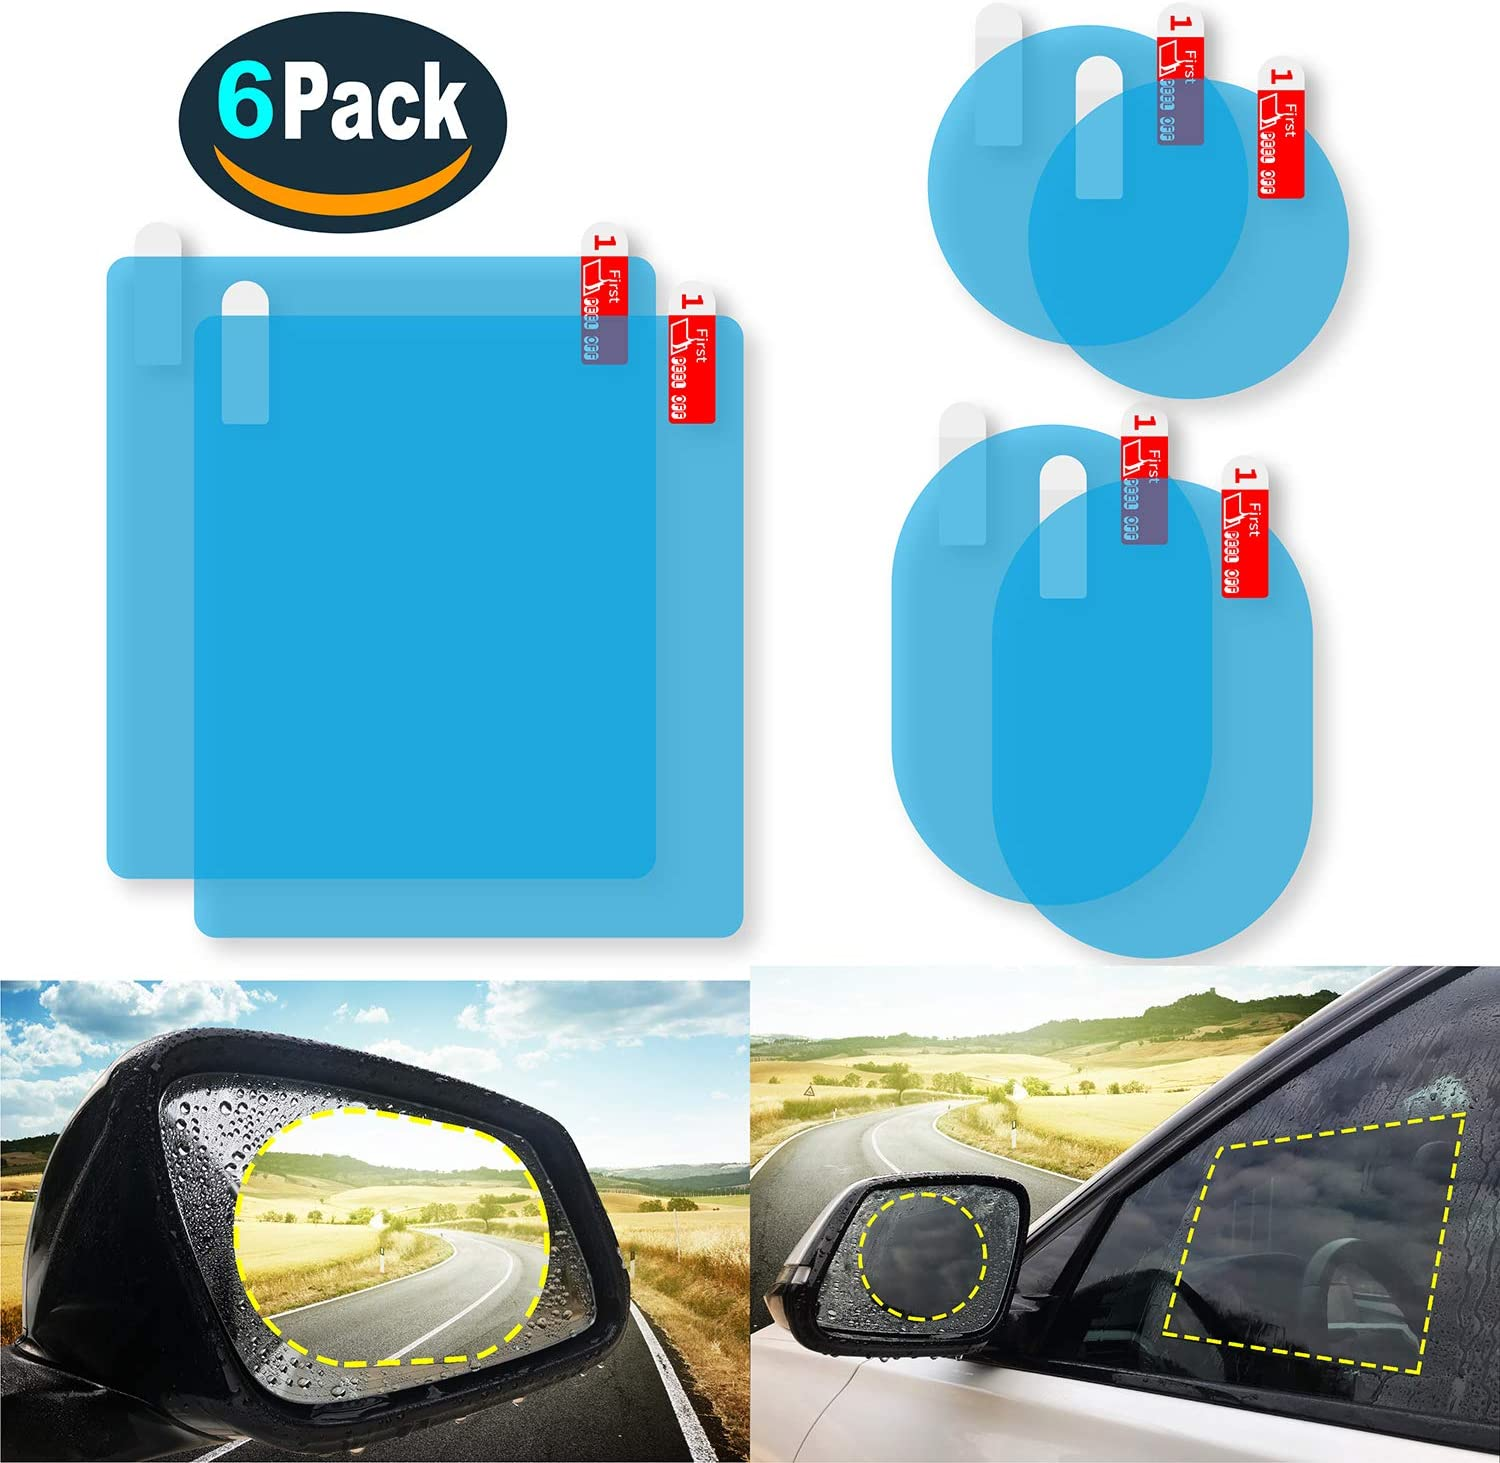 6PCS Car Rearview Mirror Waterproof Film,Car Side View Mirror flim,Nano Film Anti Fog Glare Mirror Window Rainproof Film,Clear Protective Film for Car Mirrors and Side Windows ensure Drive Safely